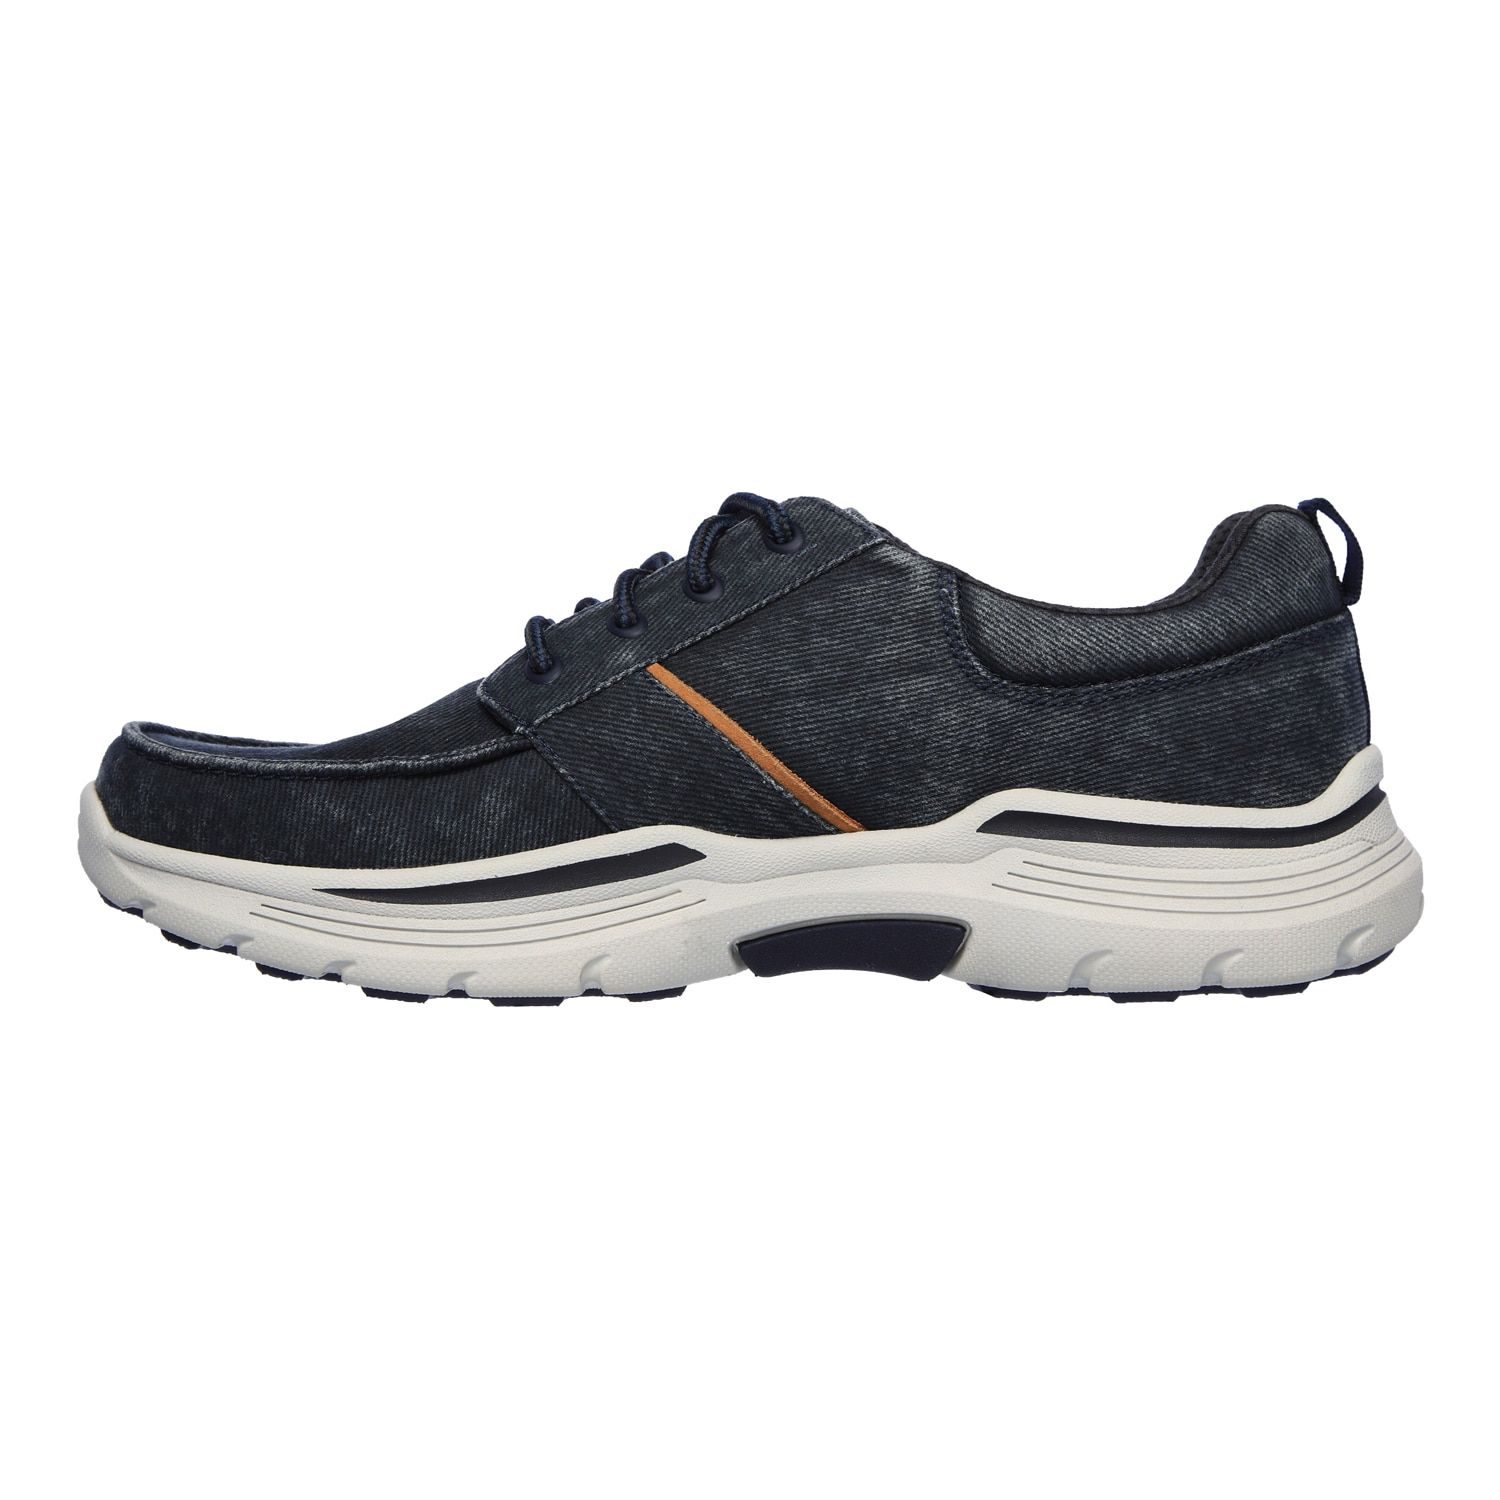 Skechers Relaxed Fit Expended Bermo Men S Shoes Affiliate Fit